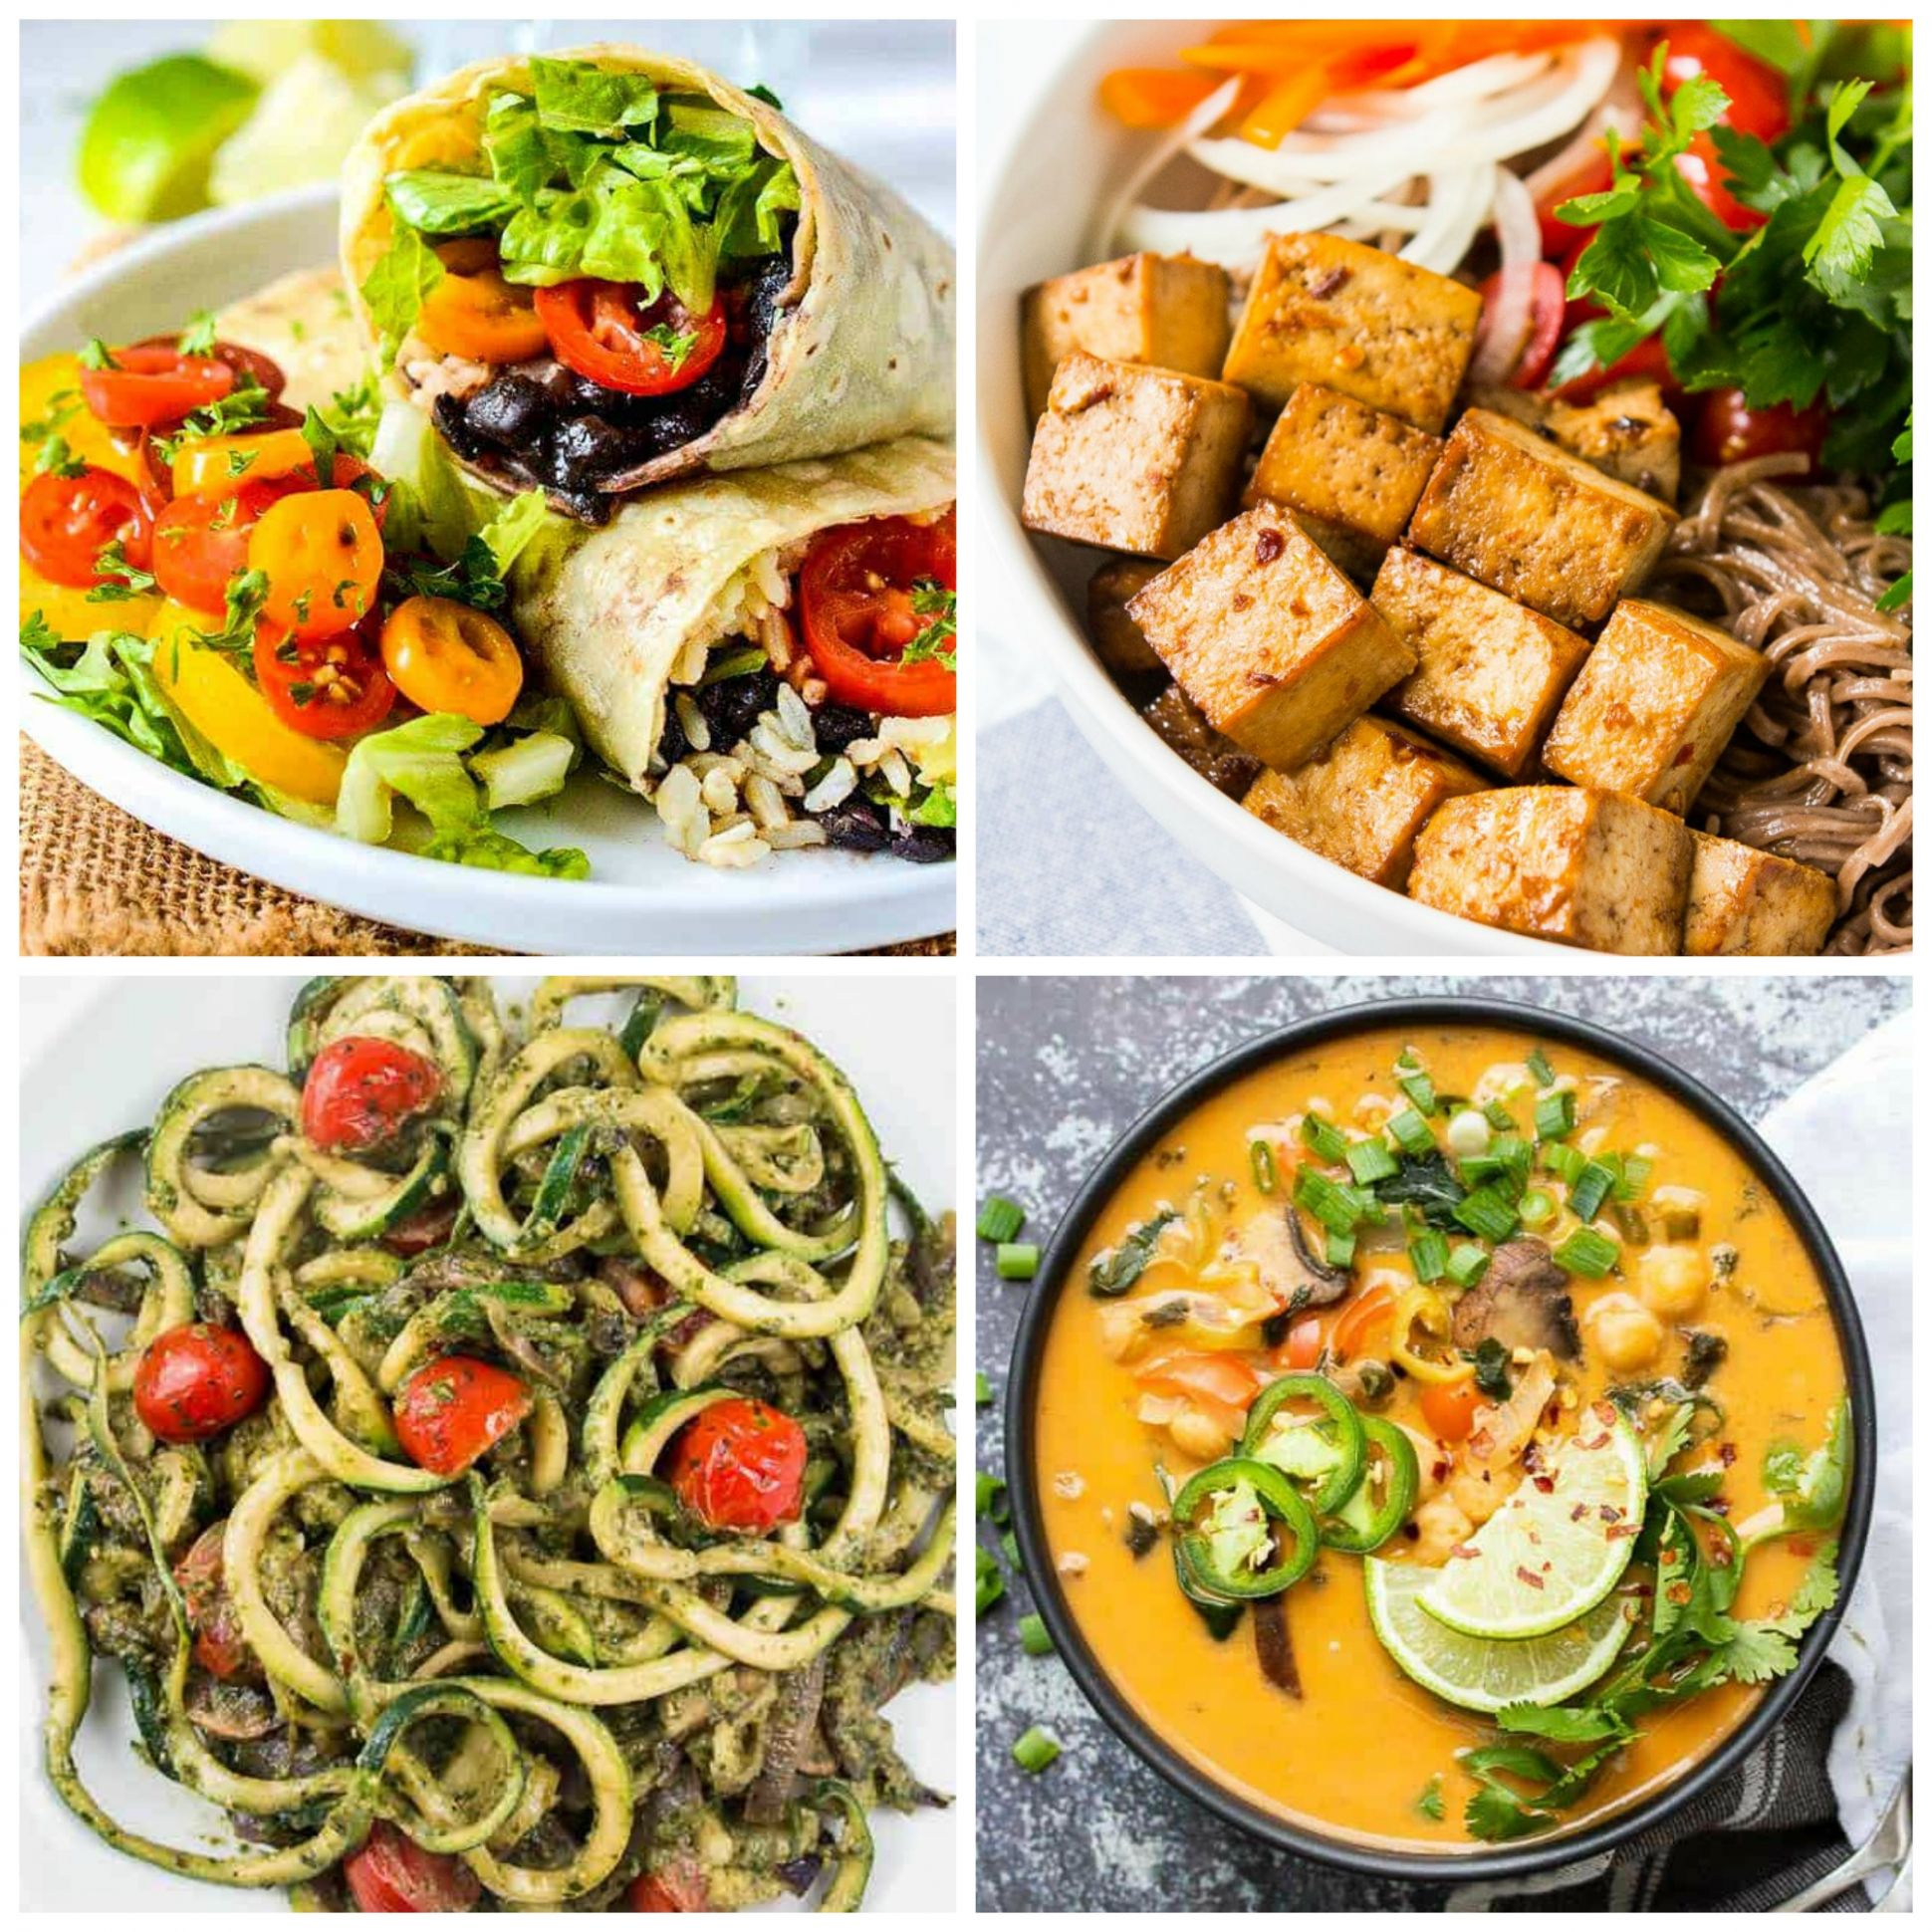 8 AMAZING Vegan Meals for Weight Loss (Gluten-Free & Low-Calorie) - Diet Recipes For Weight Loss Vegetarian